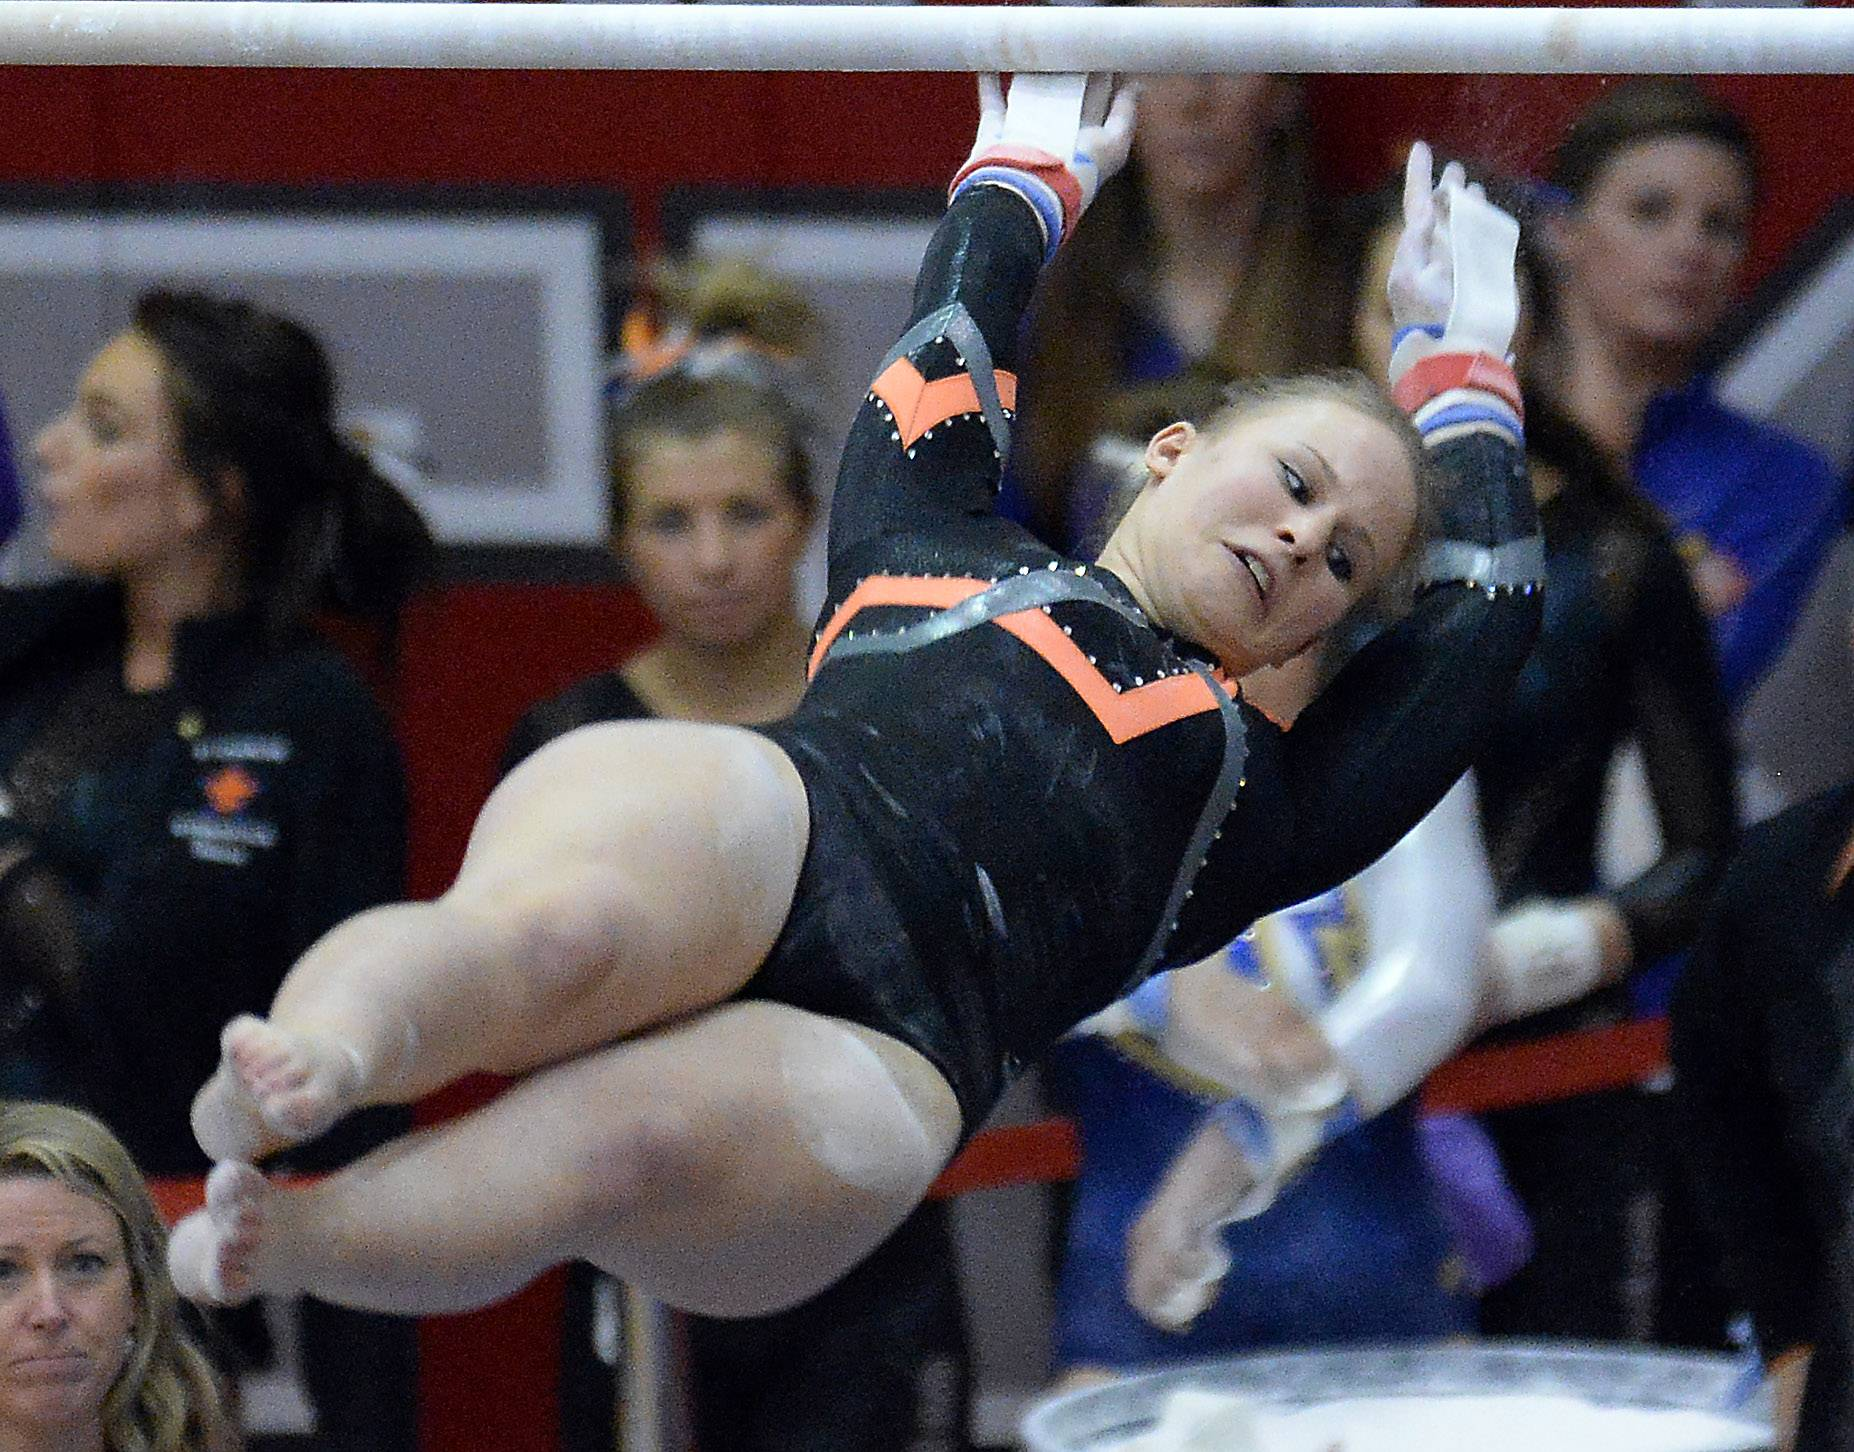 Mariah Lee of Libertyville performs on the uneven parallel bars.